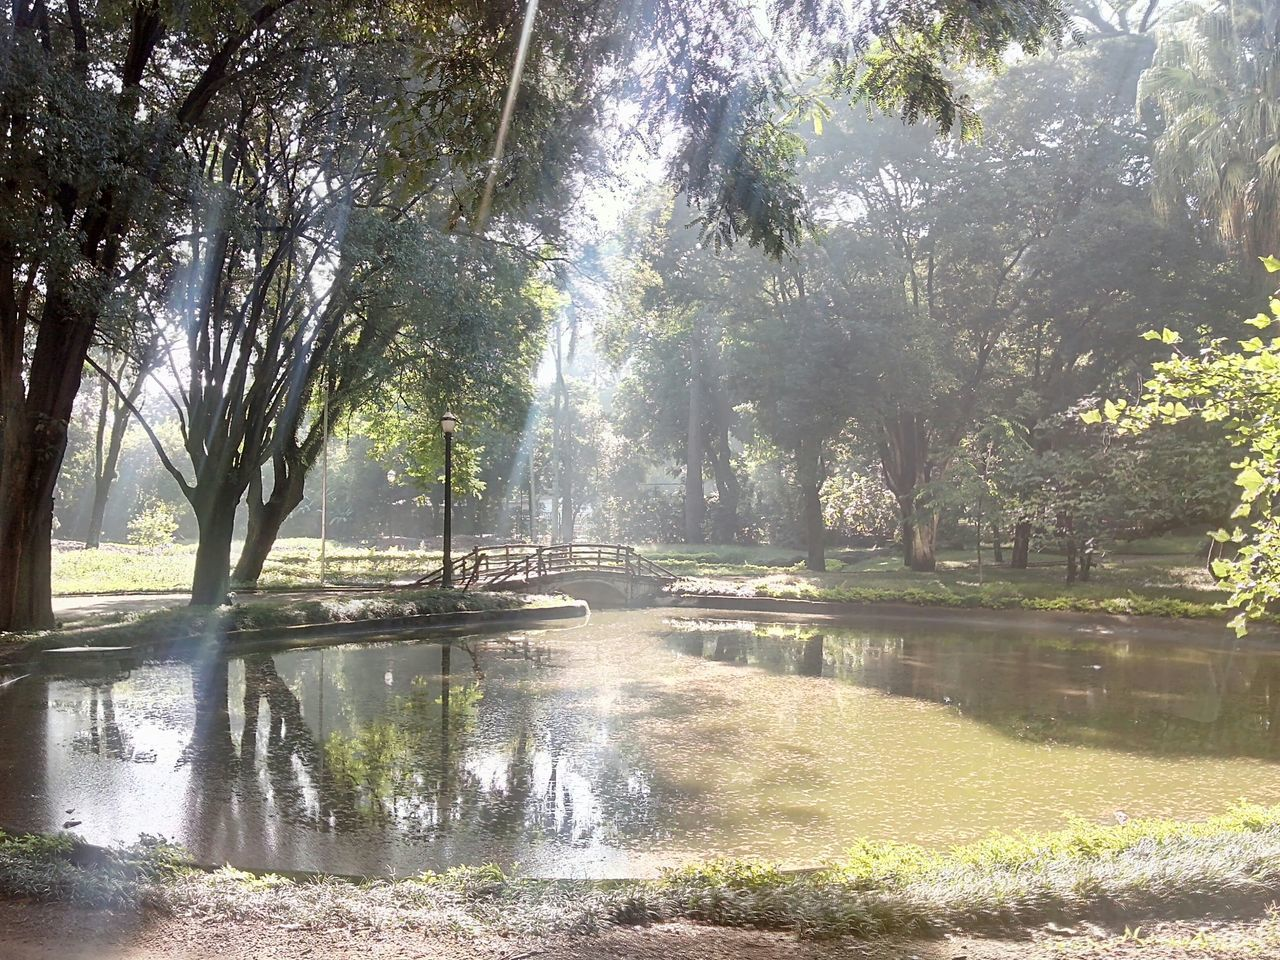 No effects, just God...Nature_collection Enjoying Life Getting Inspired Mobgraphia Good Morning! Sao Paulo - Brazil Hugging A Tree Jardim Da Luz